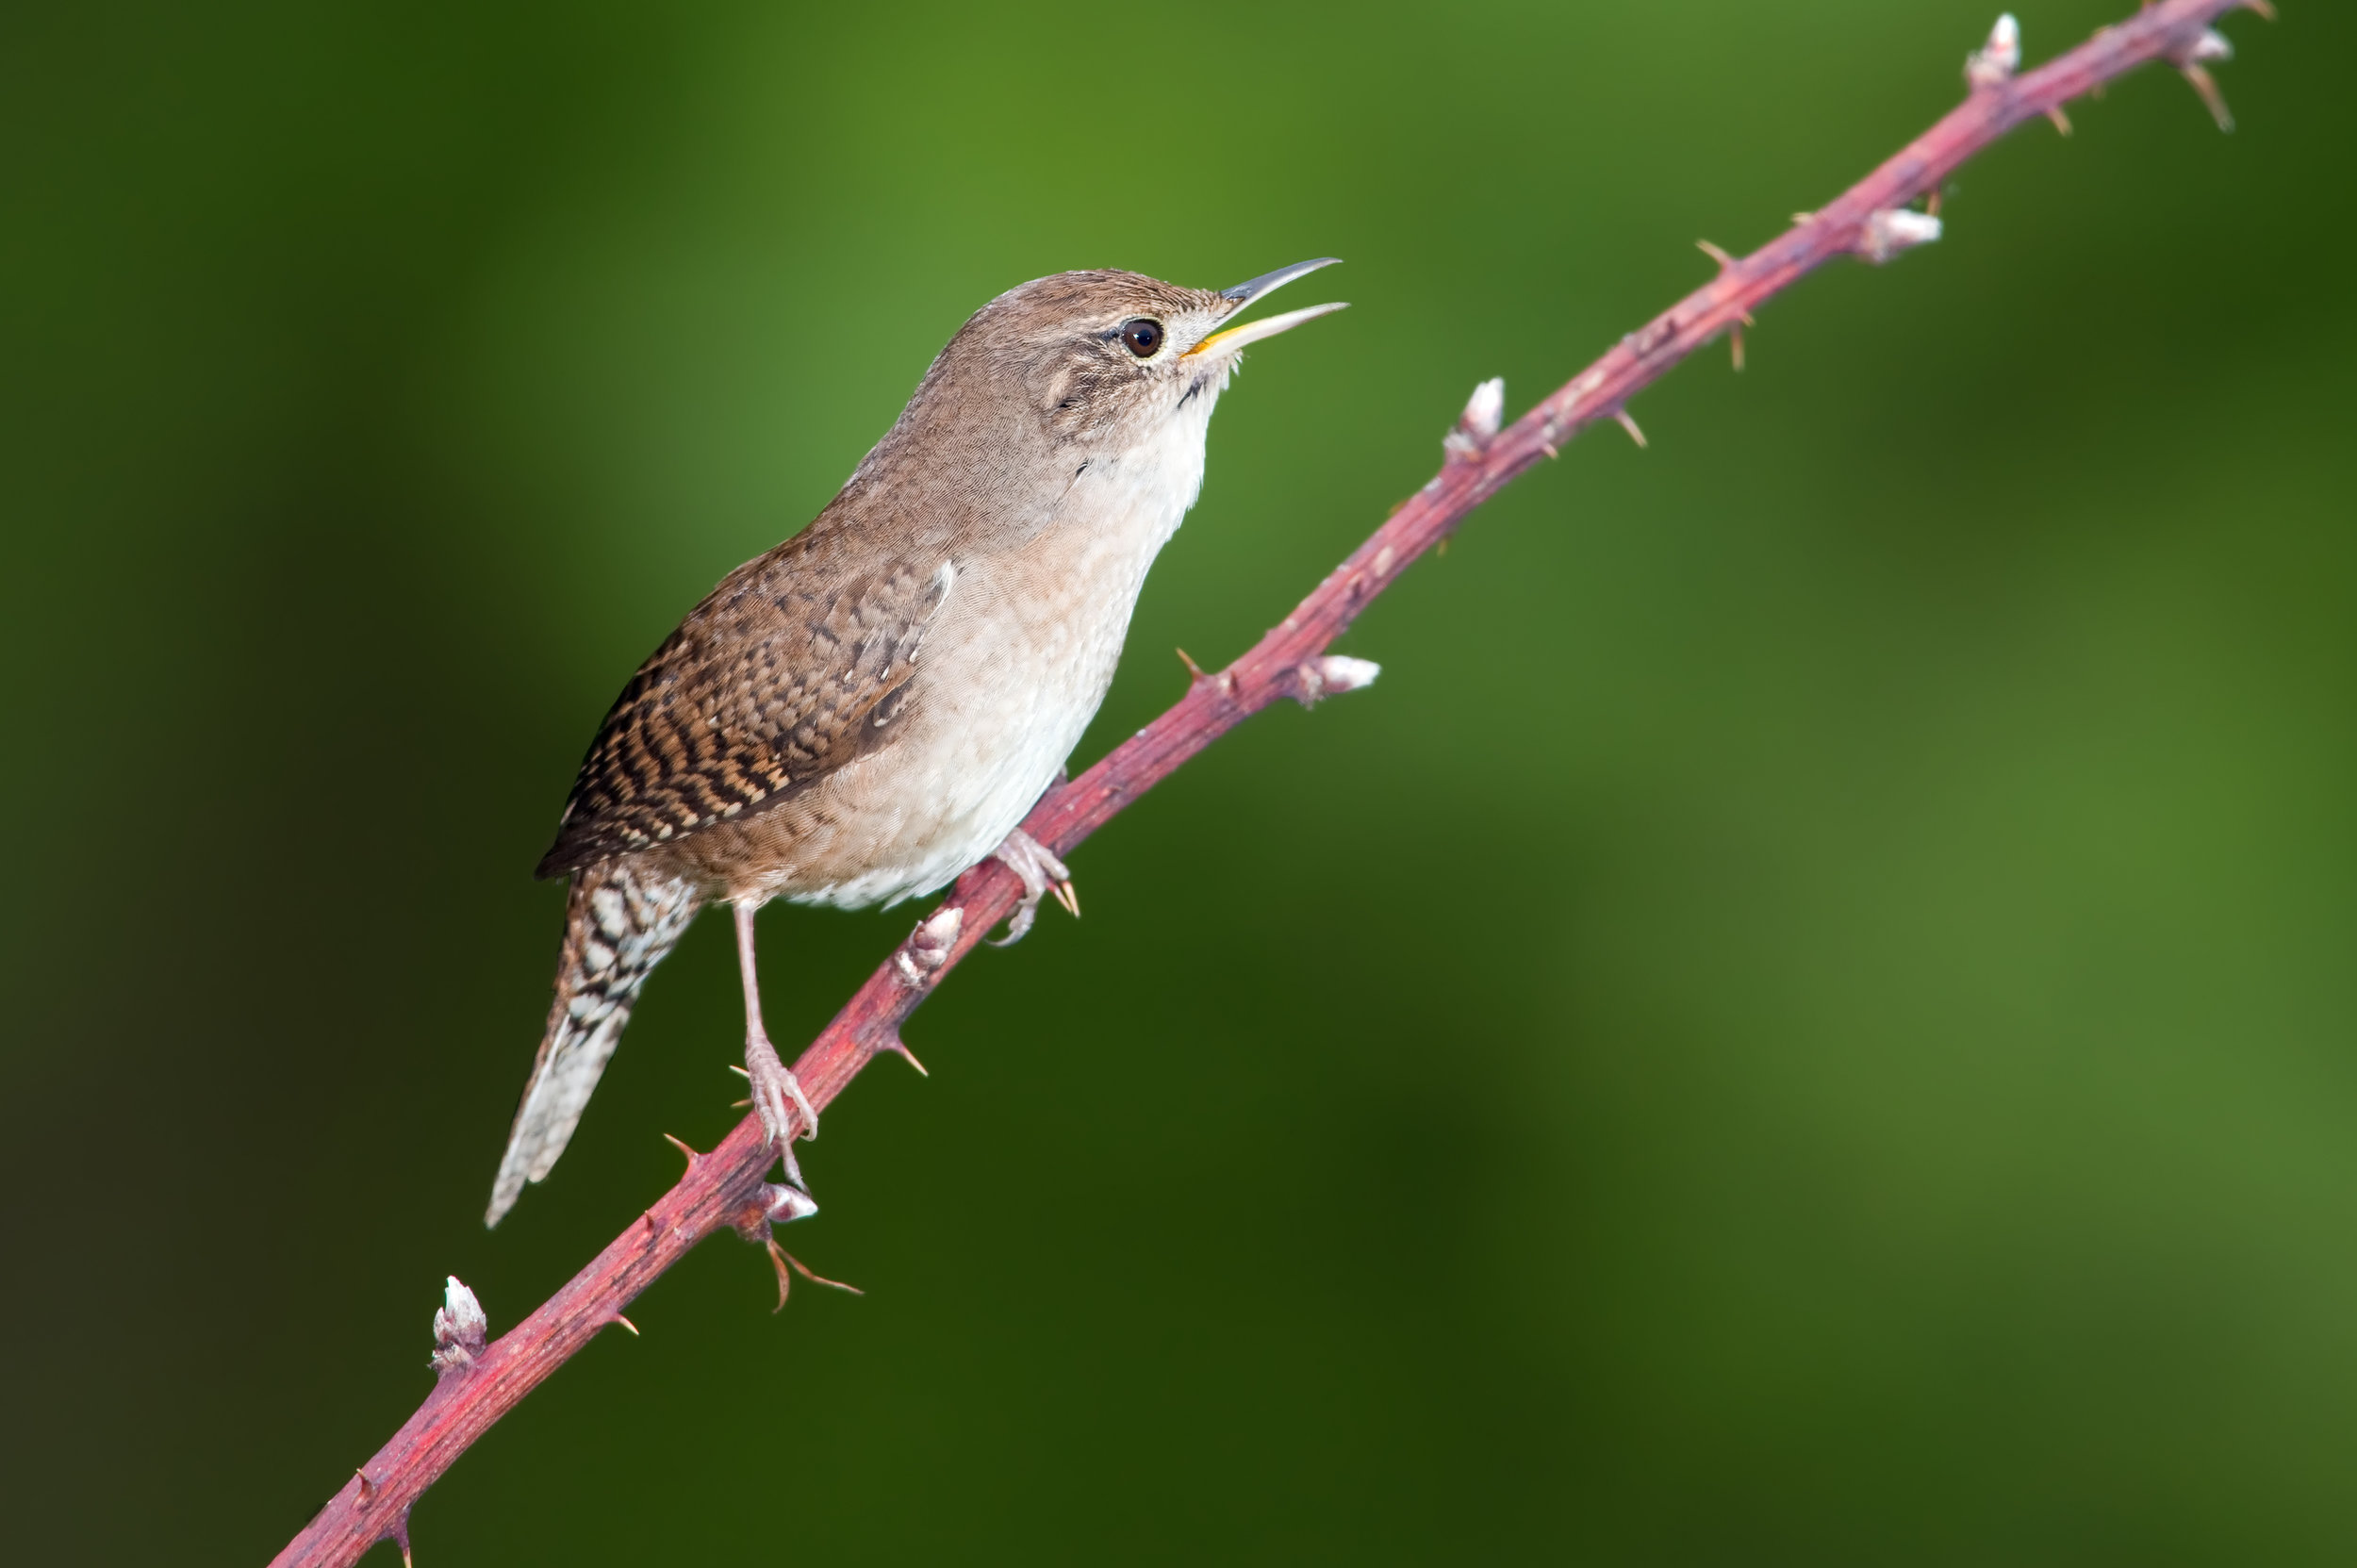 """- House Wren (Ttroglodytes aedon)House Wrens live absolutely anywhere there are trees, ranging from deciduous and coniferous forests to backyards and swamps. Their diet consists of insects, spiders, and snails. House Wrens weigh about 0.4 oz. and have an average wingspan of 5.9 in. They sing """"ch-ch-chur cha-chur cha-chur chchrruuuup"""" in a series of chirps. They are protected on the US Migratory Bird list.Photo Credits: Kelly Colgan Azar"""